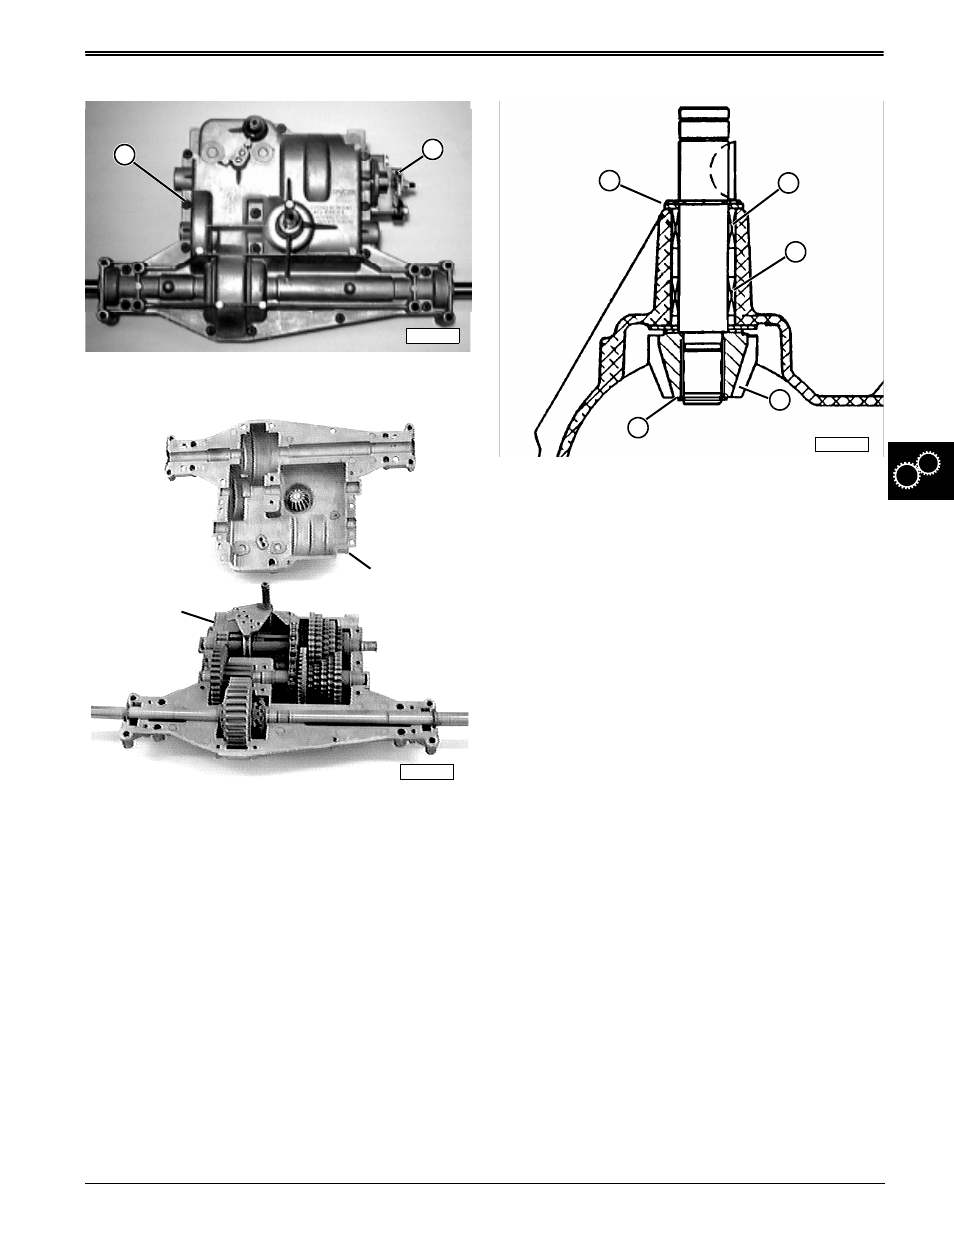 John Deere Stx38 Repair Manual Best Deer Photos Alternator Wiring Diagram Manuals Omview User Page 223 314 Original Mode